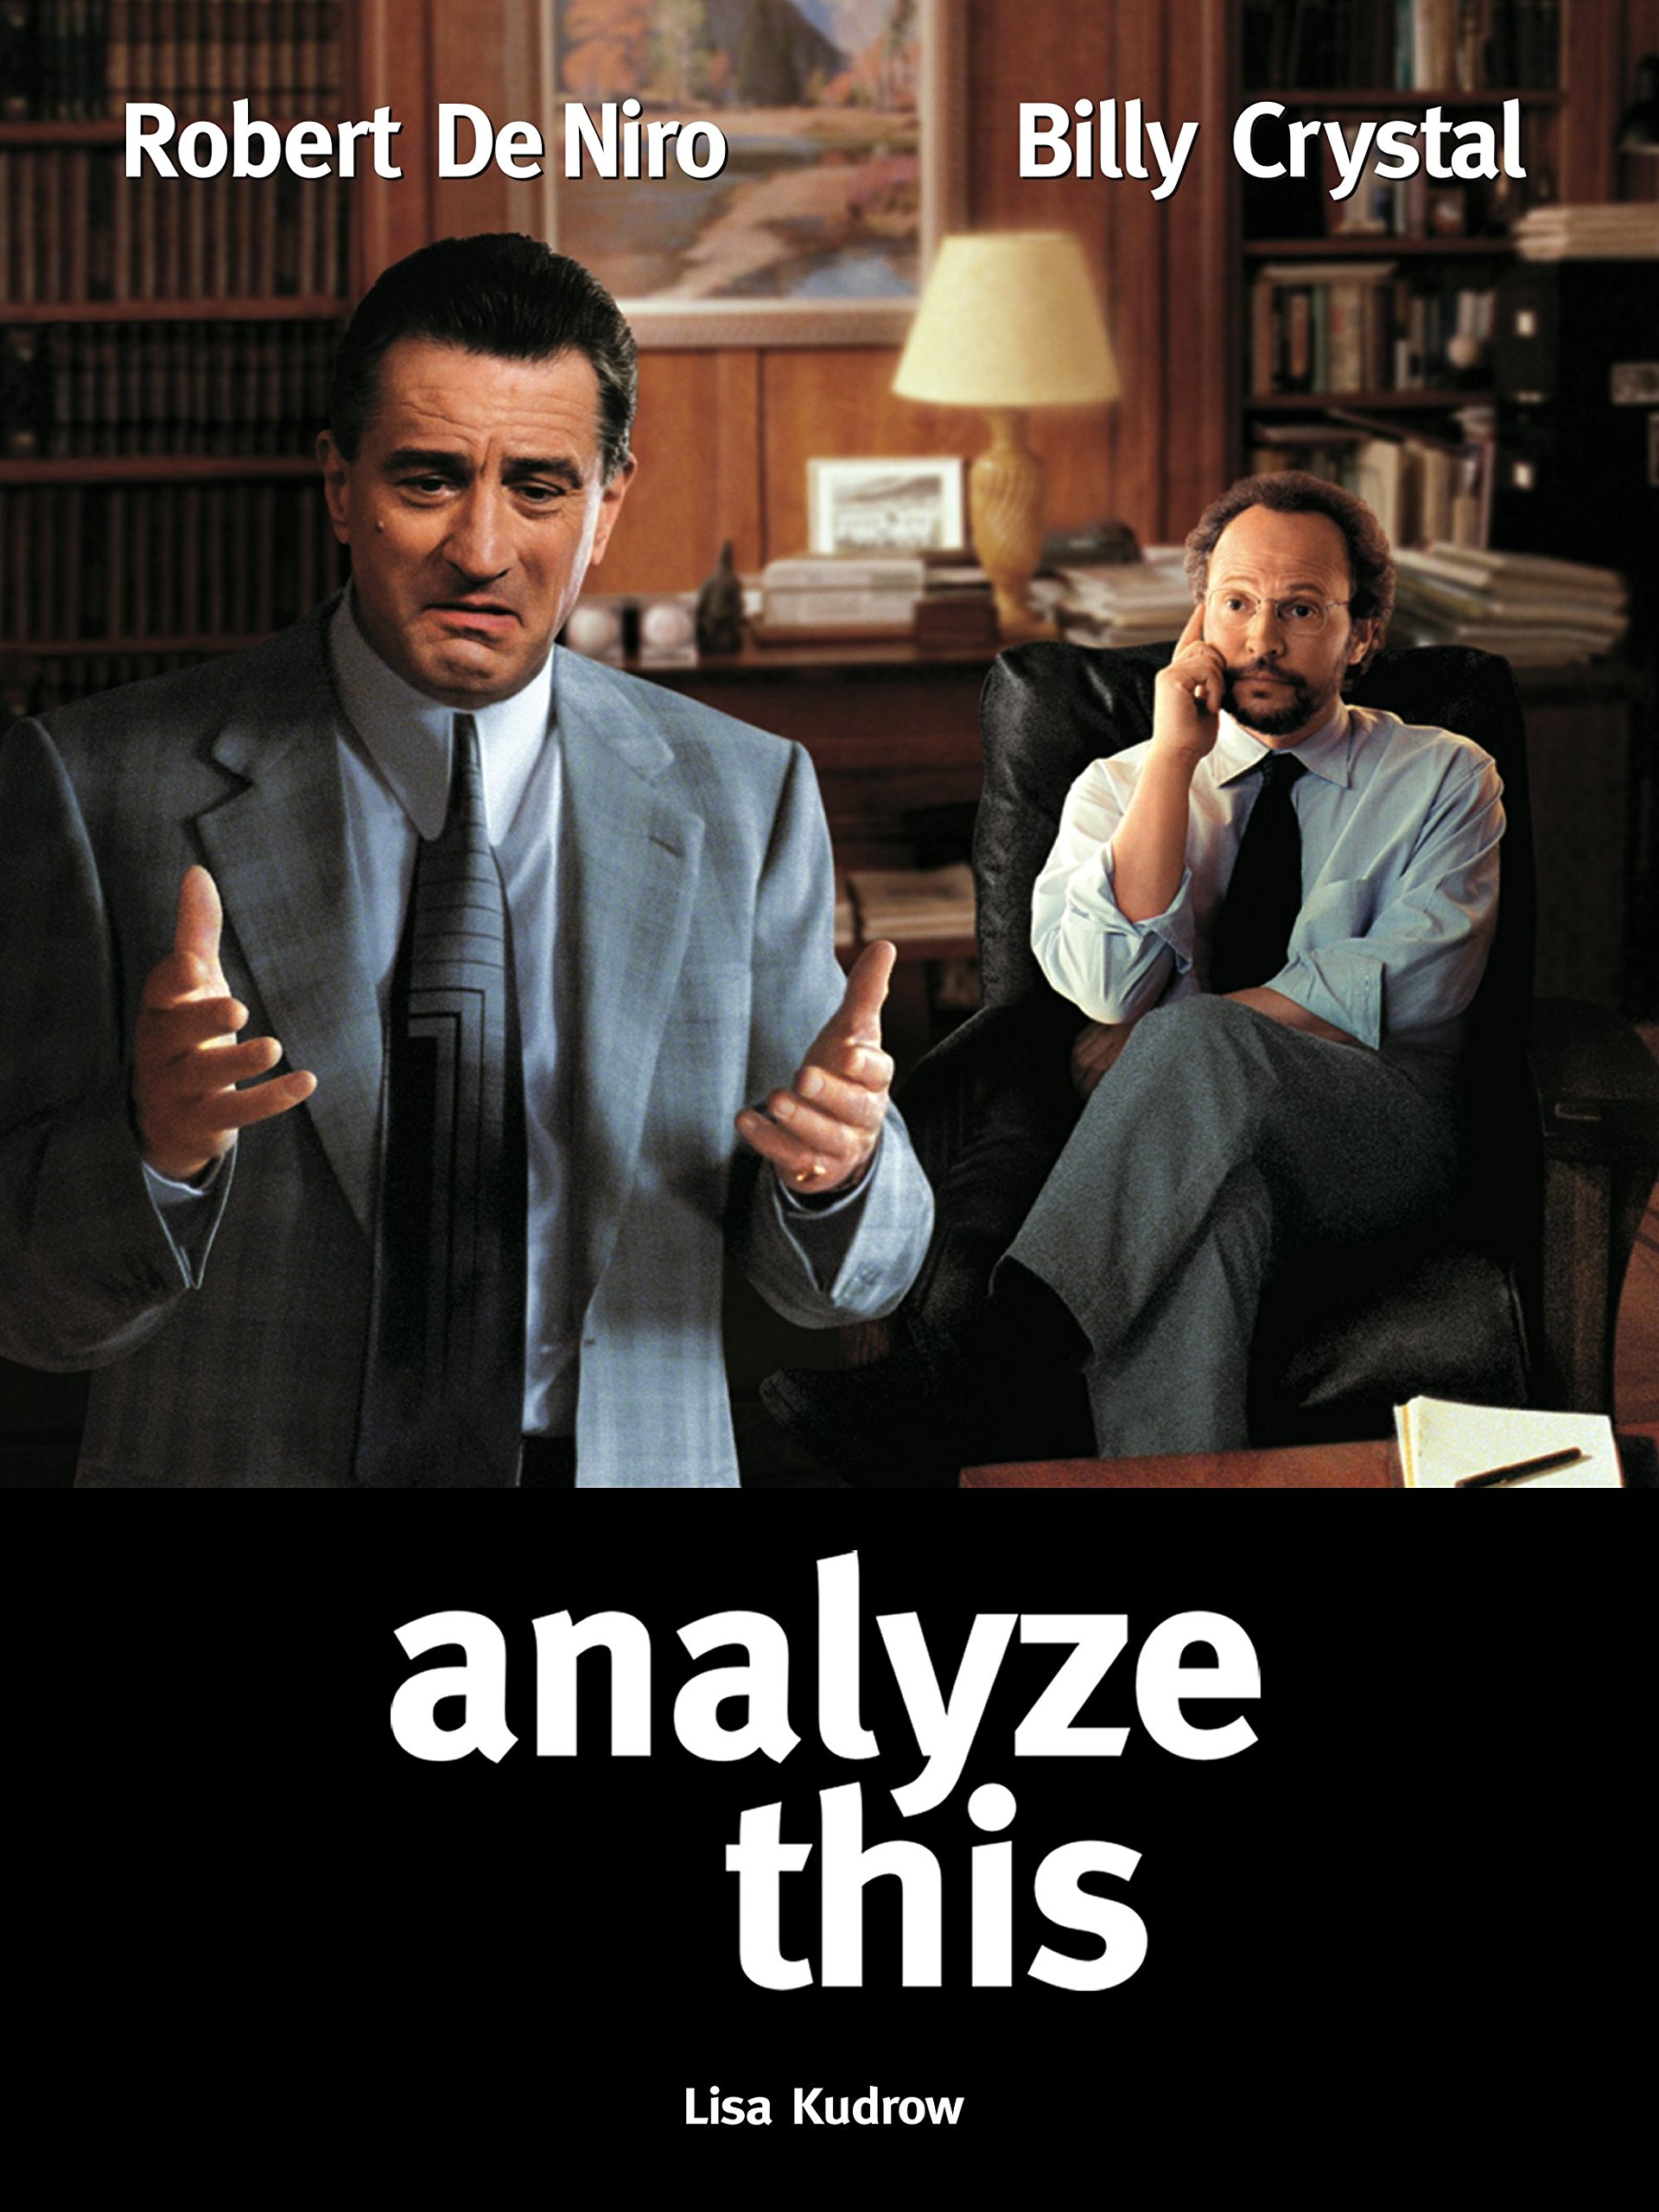 Image result for analyze this images